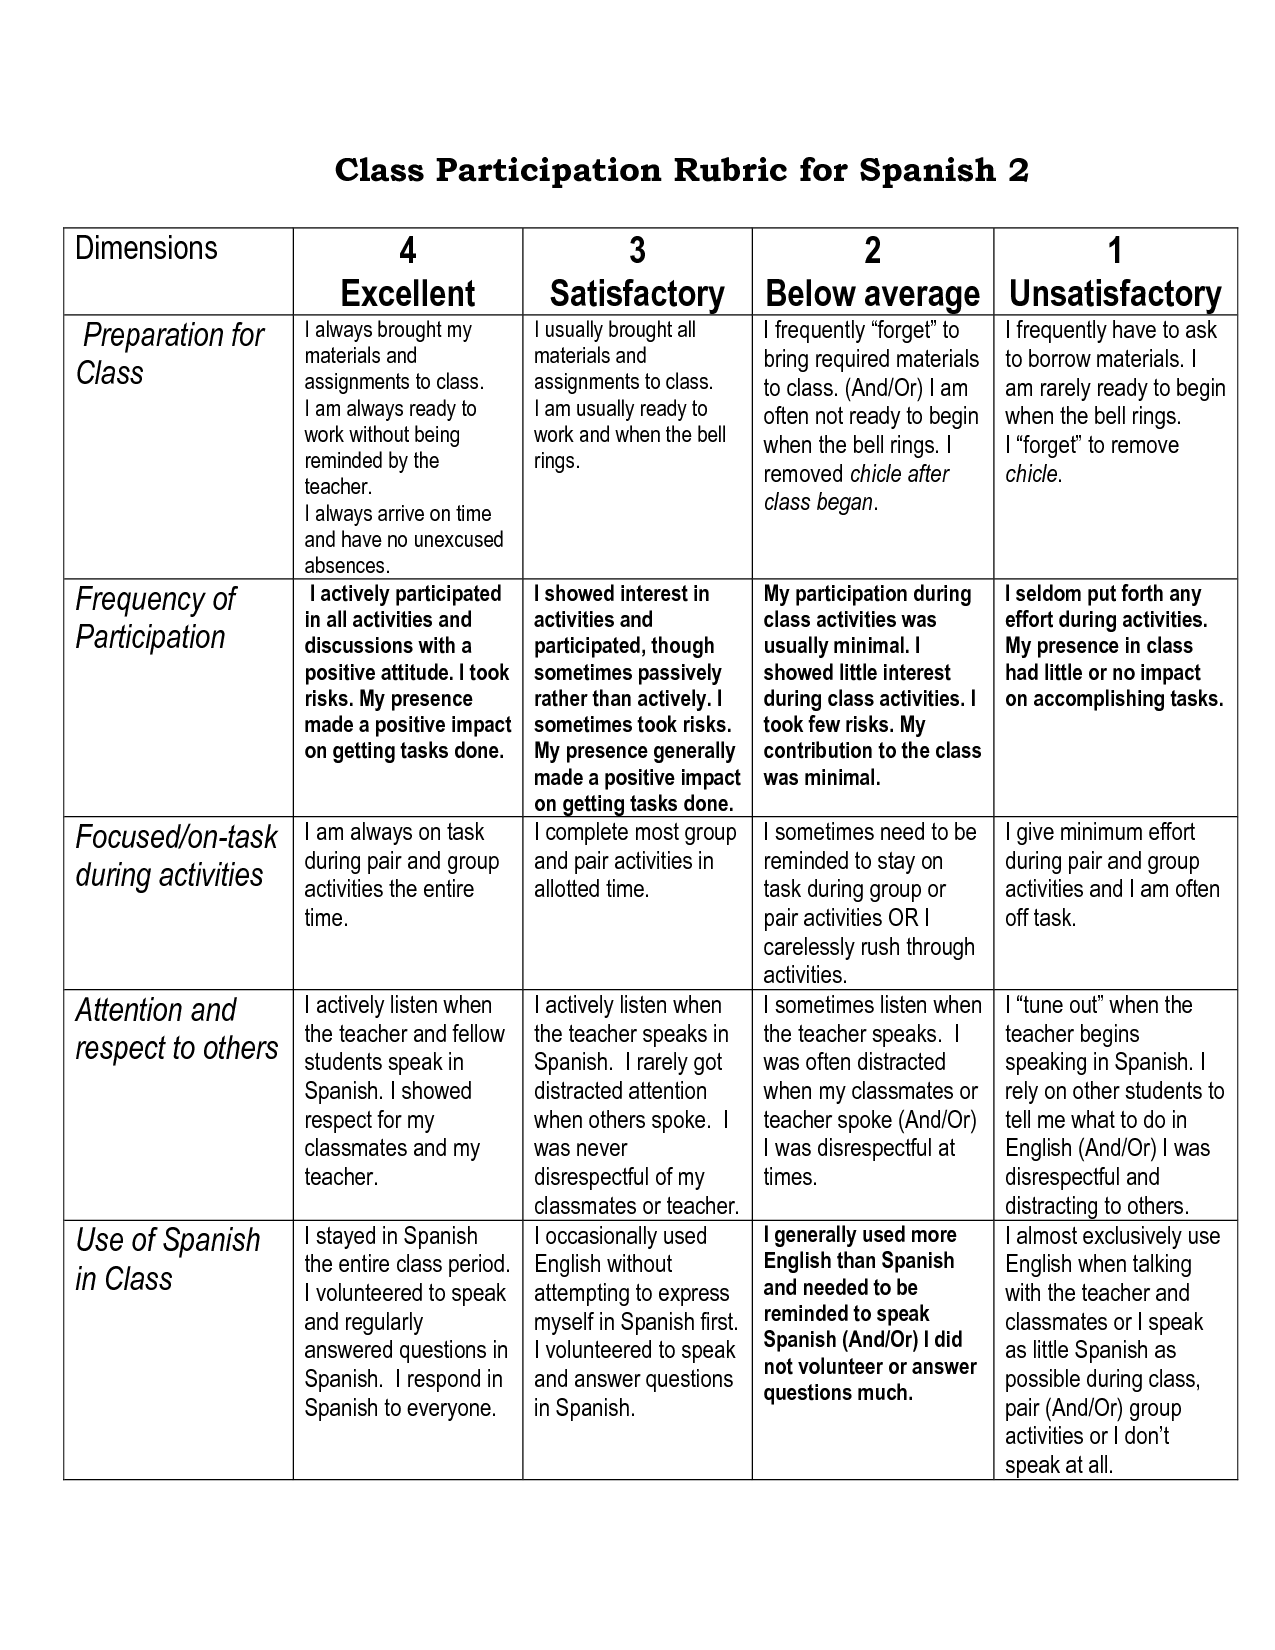 Classroom Design Rubric ~ Class participation rubric for spanish fixed rubrics